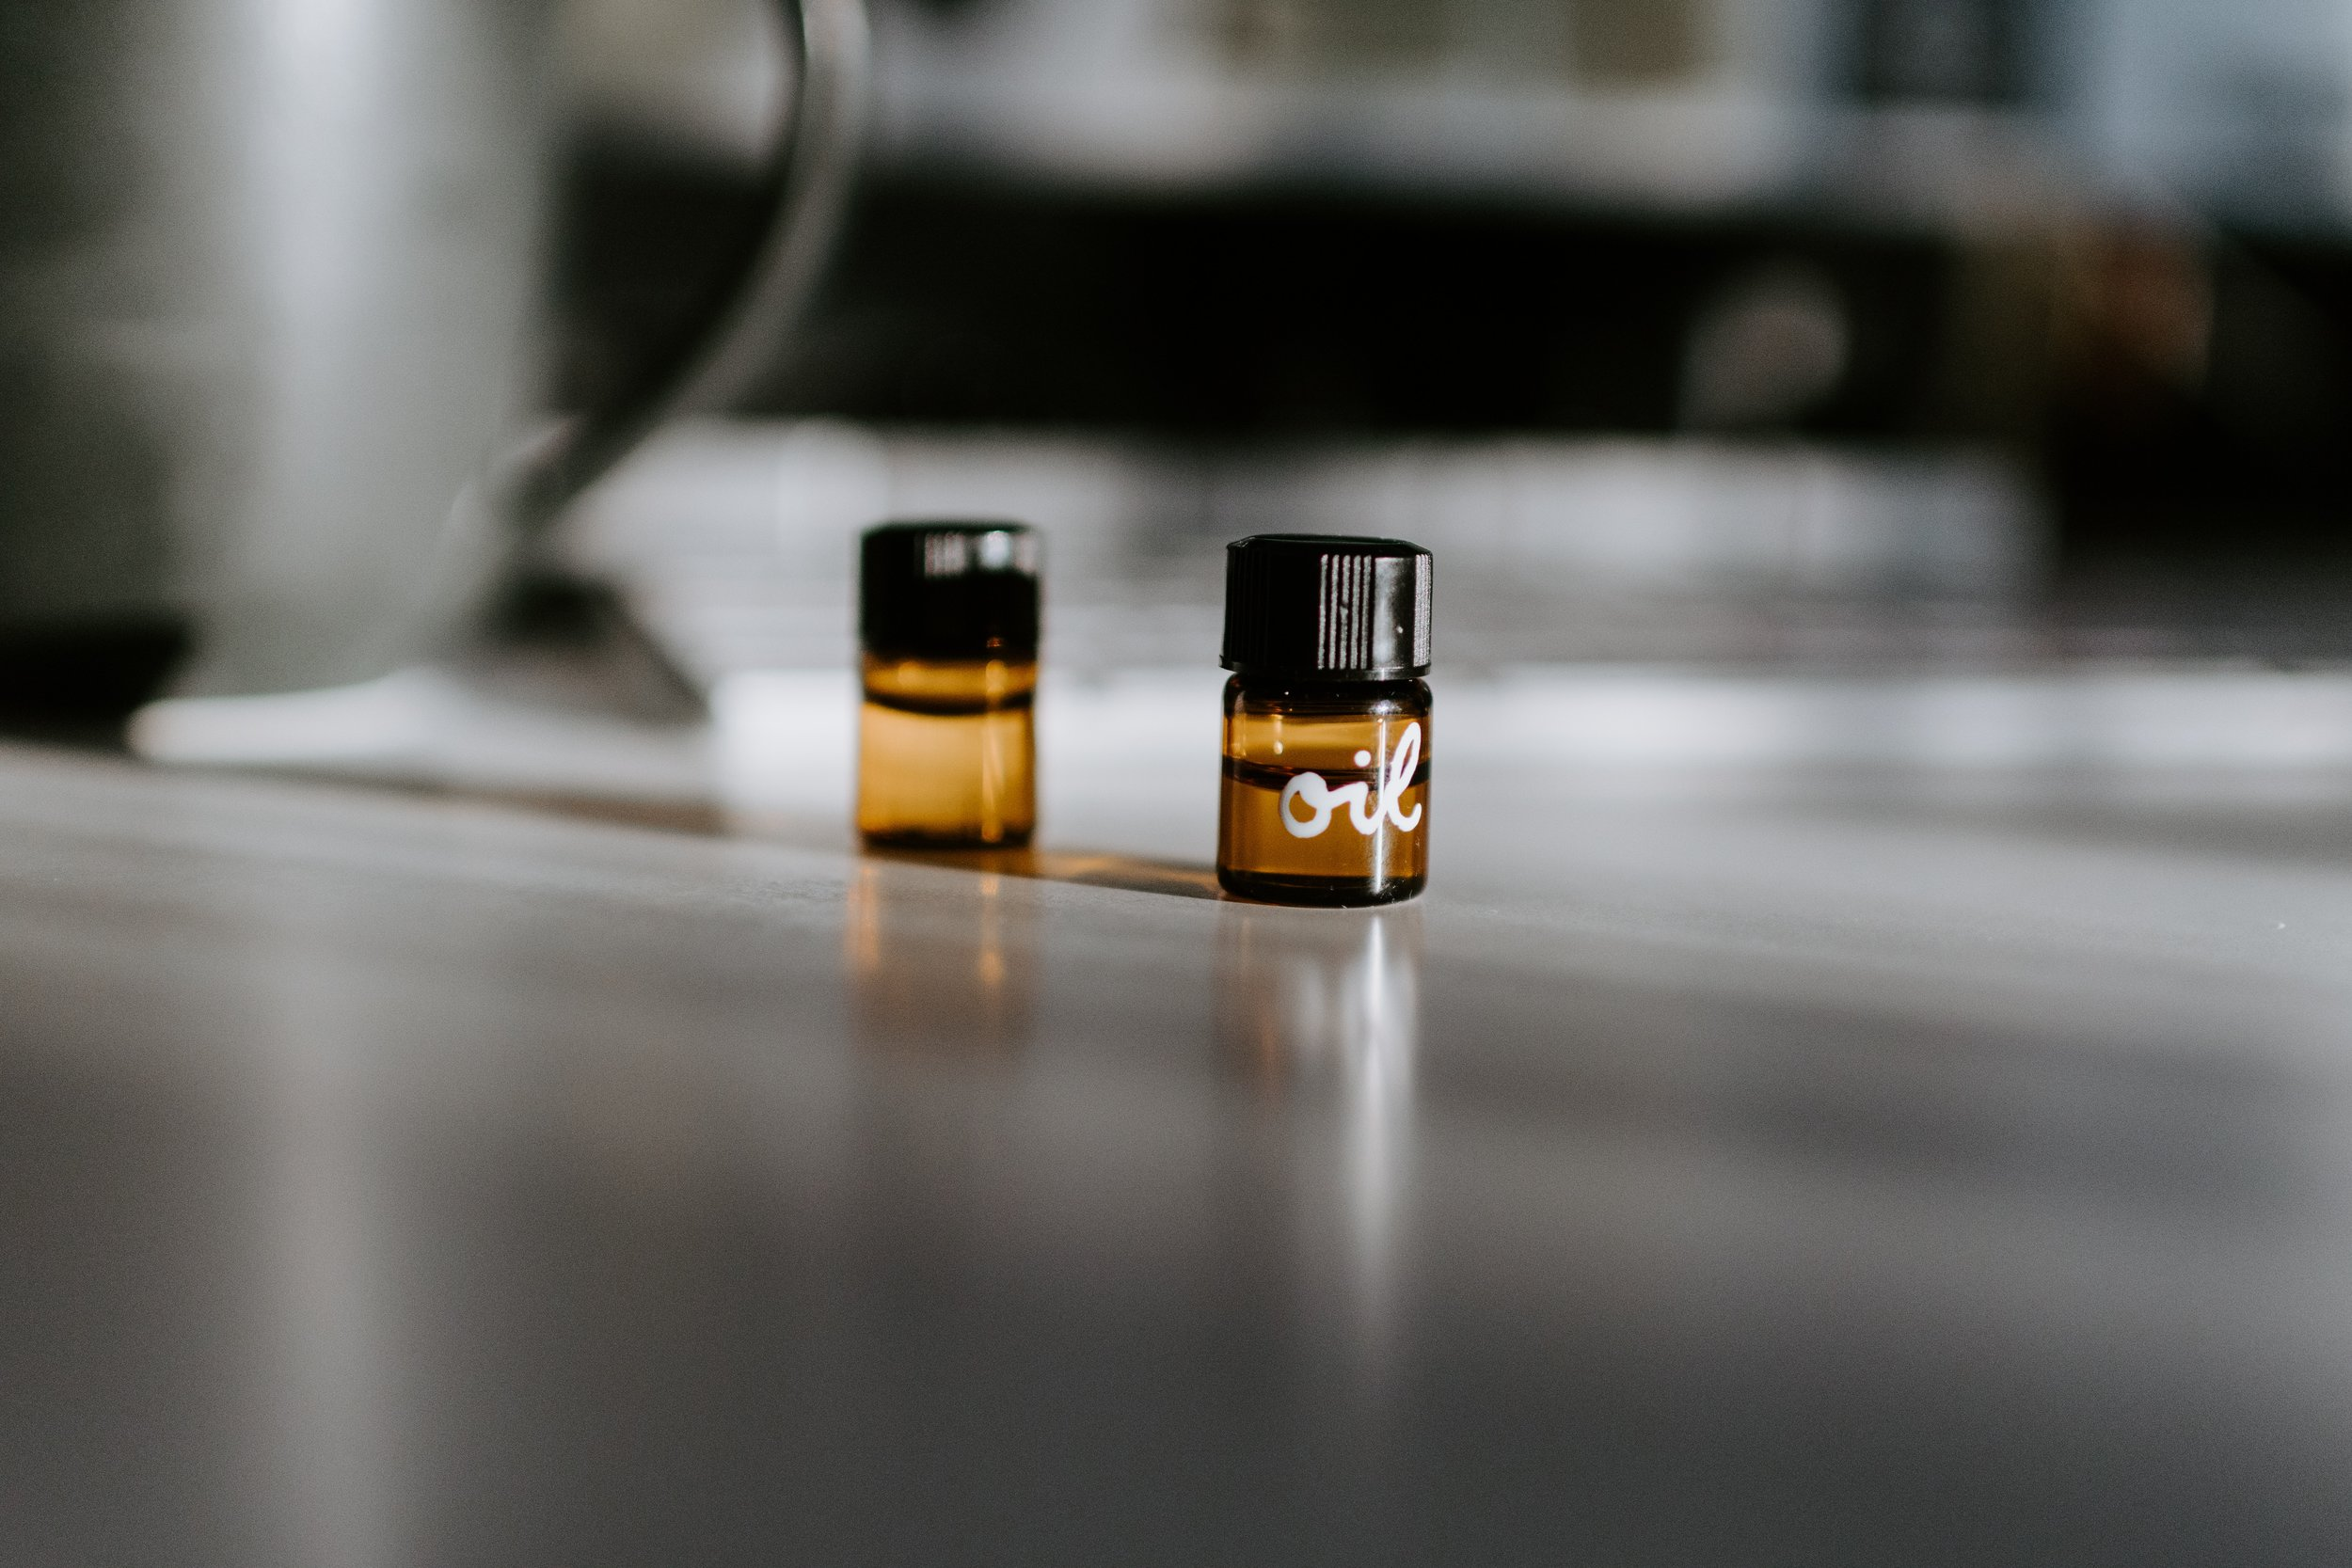 Quality essential oils can support good health.